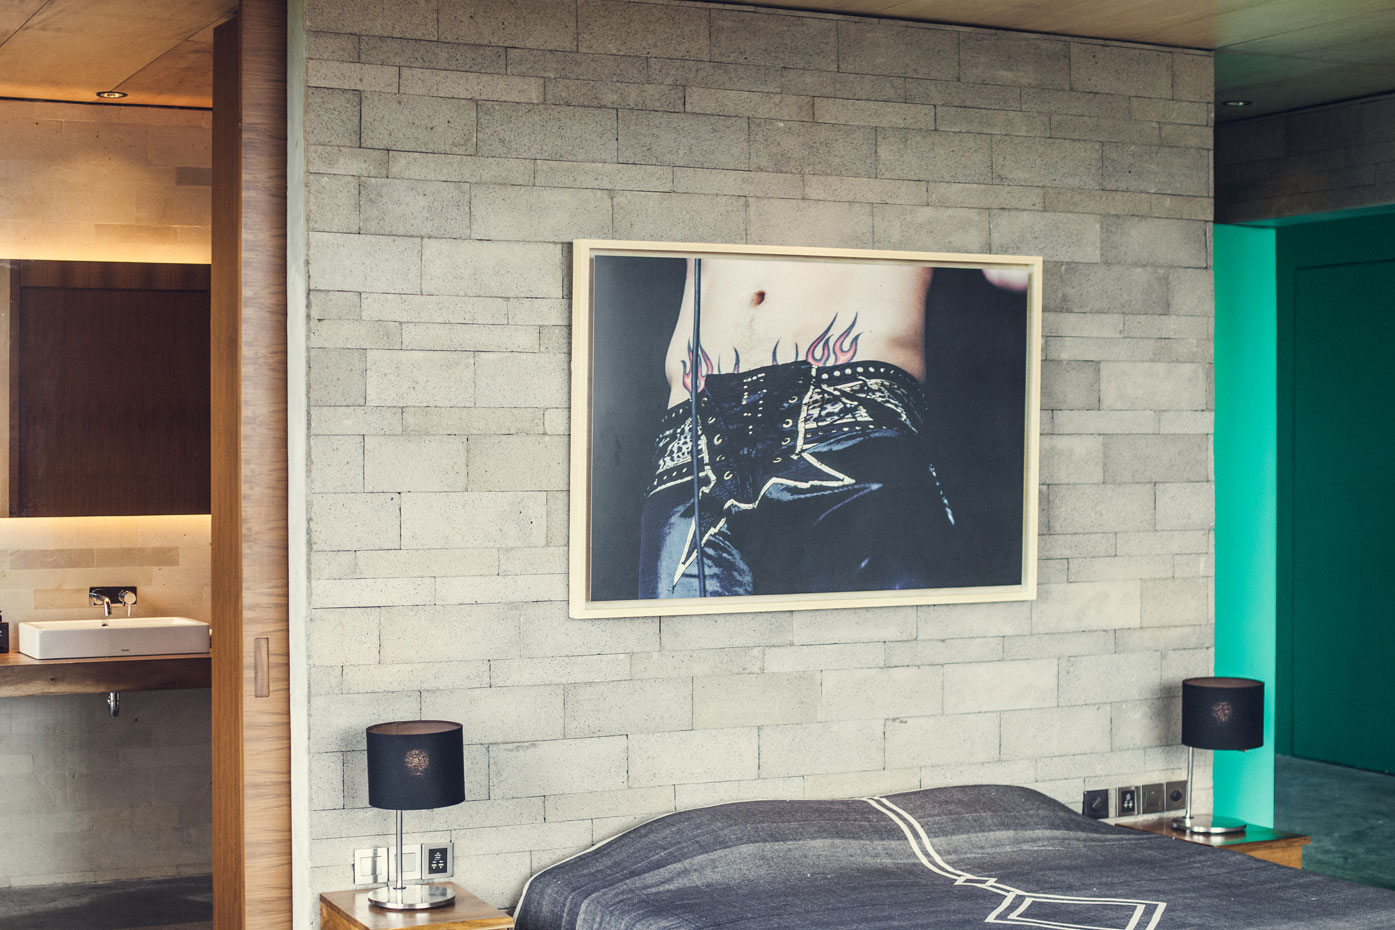 Bedroom at The Slow, Bali. Misty Creek bed throw by Pony Rider